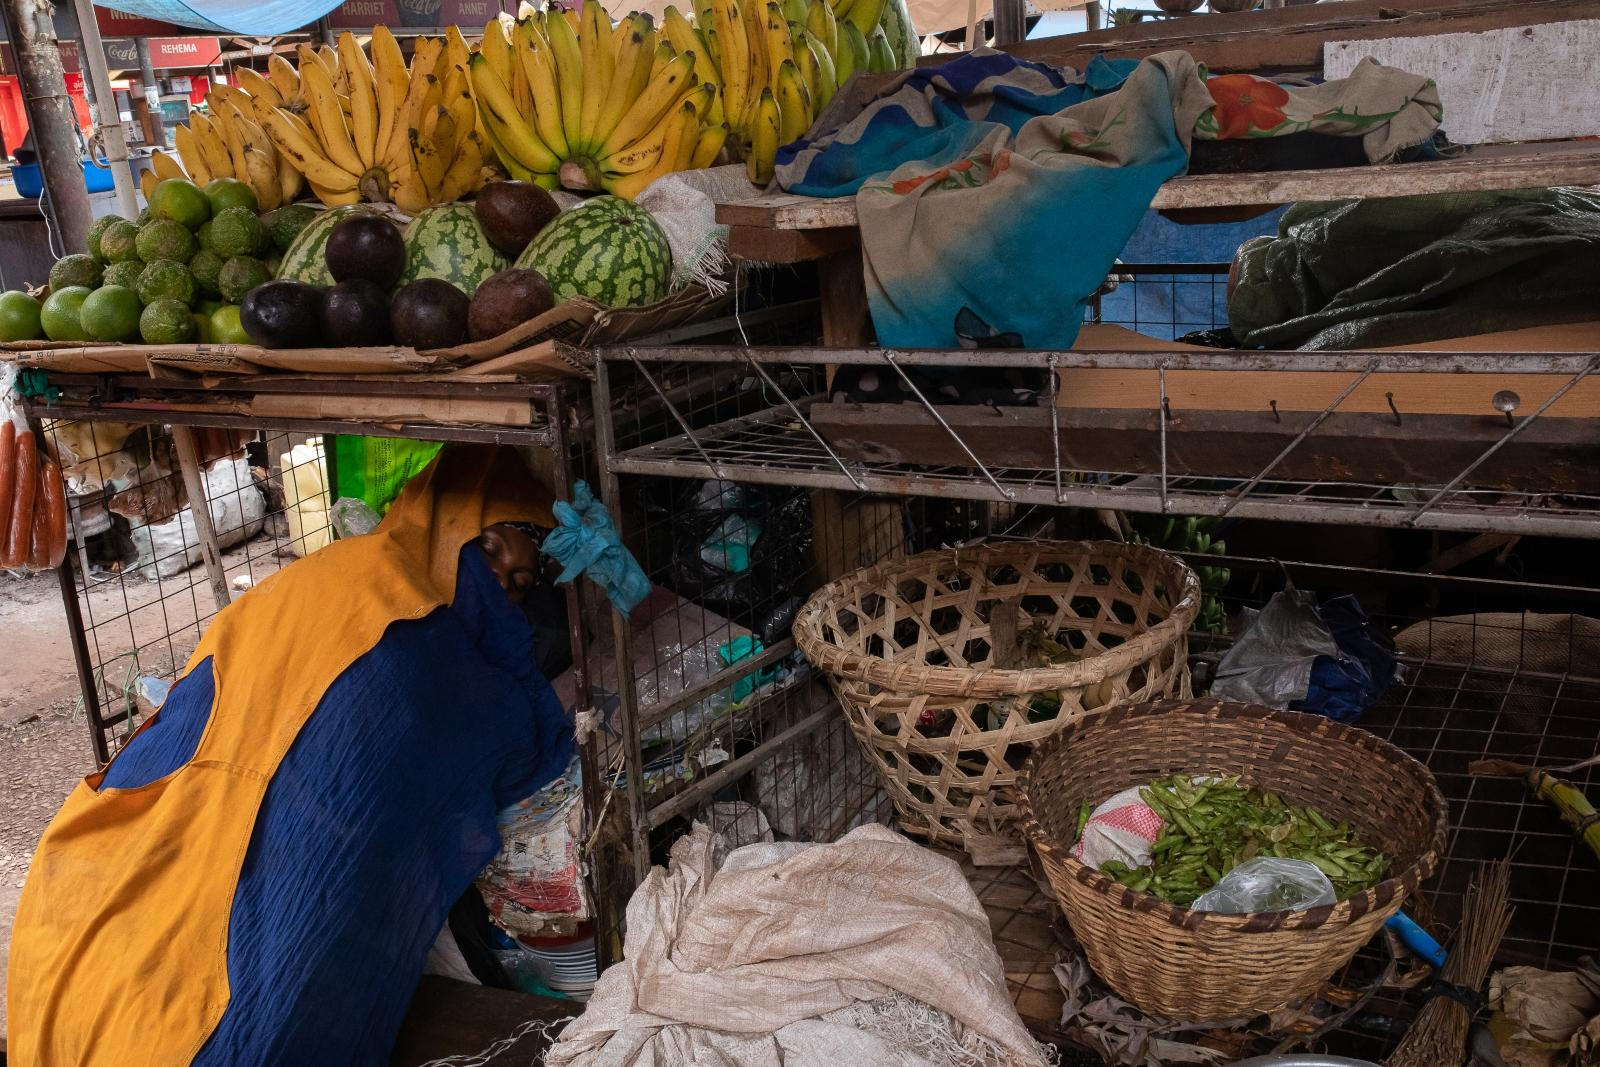 A woman asleep in her fruit stall